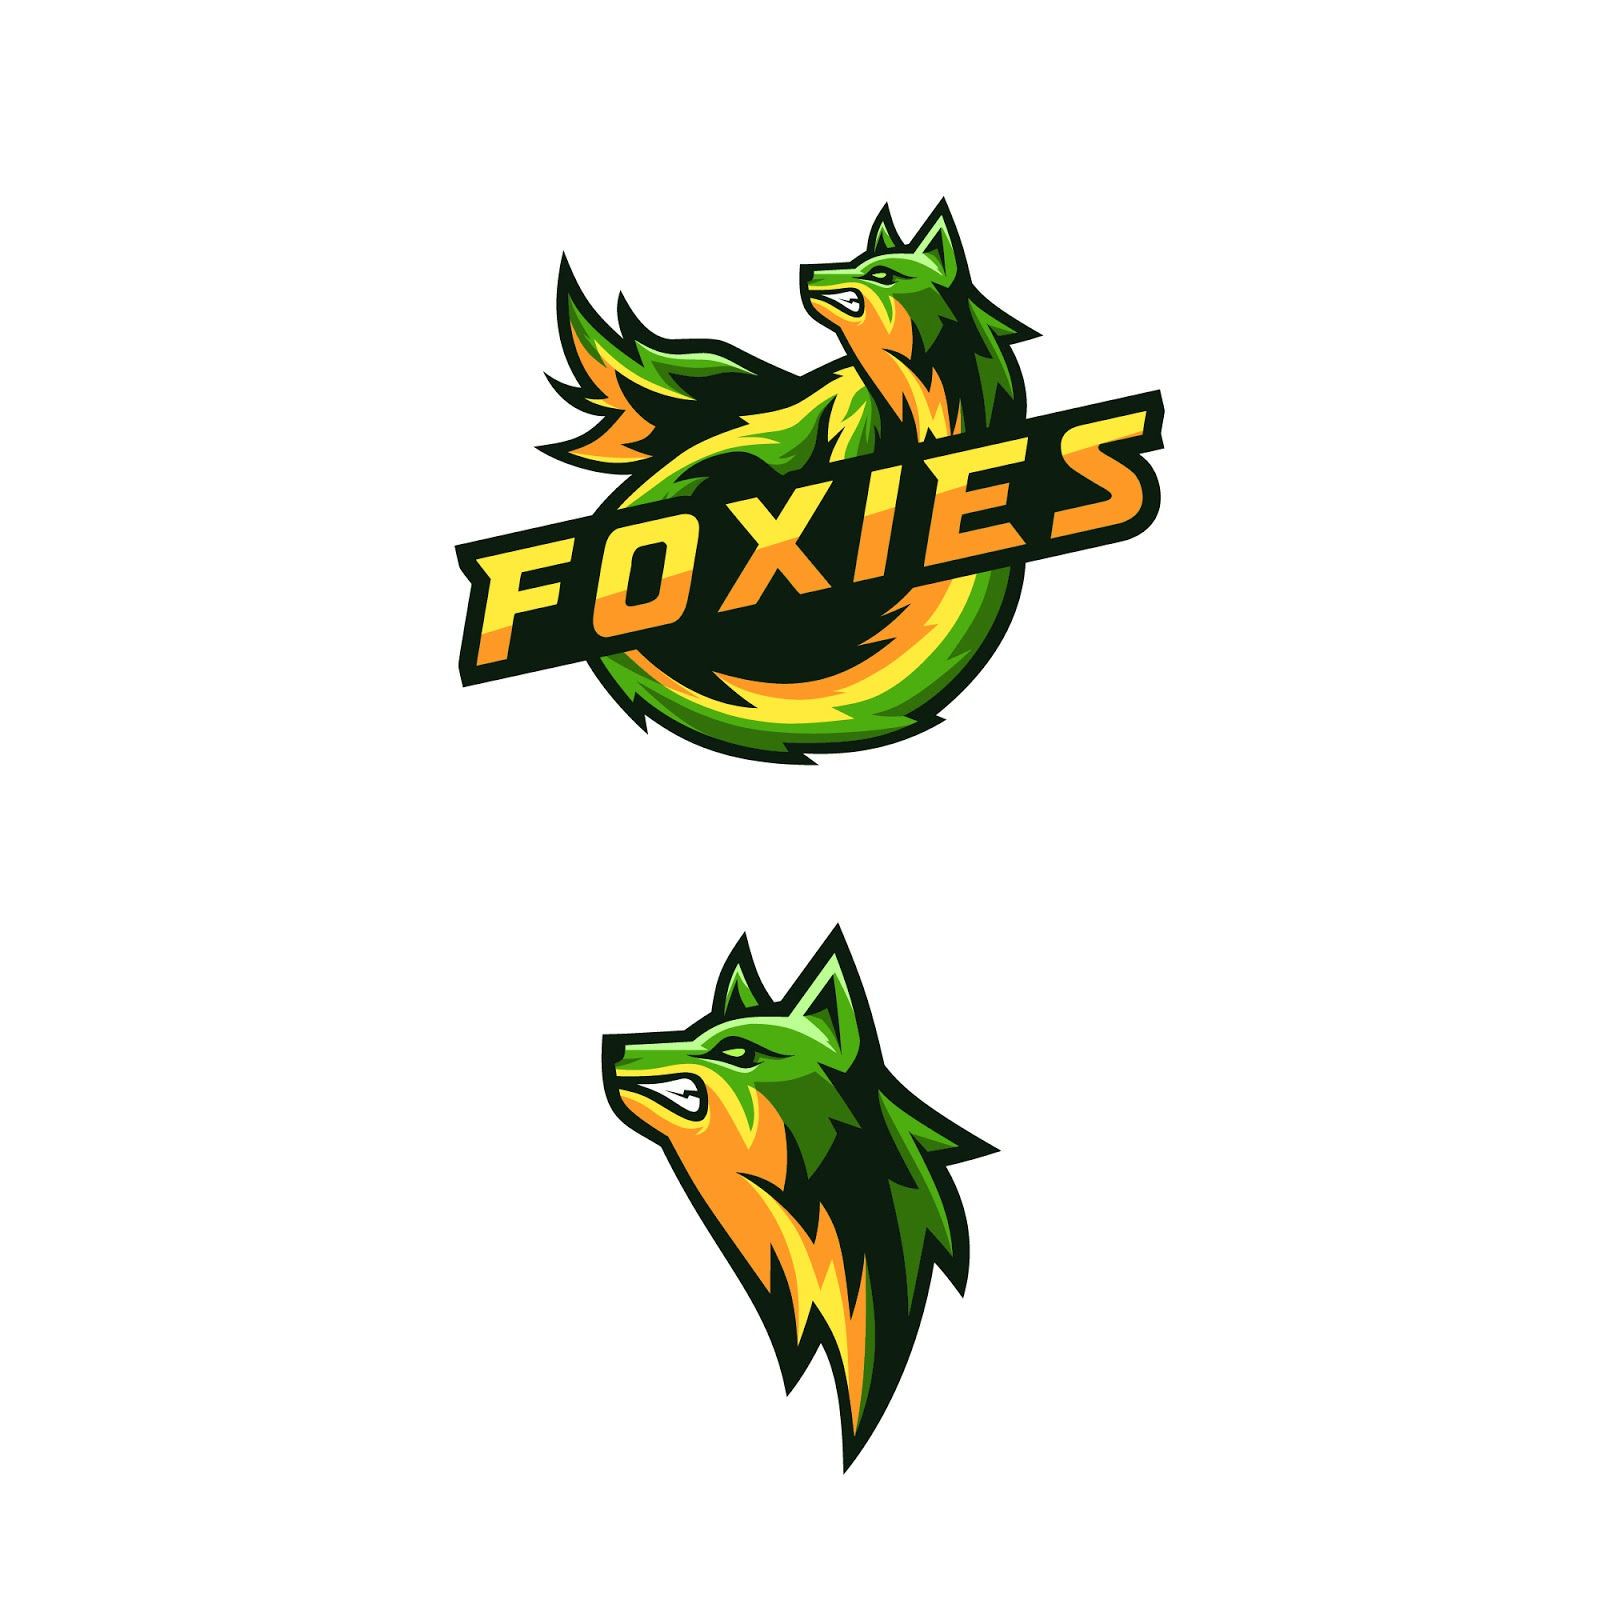 Awesome Foxies Logo Squad Gaming Free Download Vector CDR, AI, EPS and PNG Formats